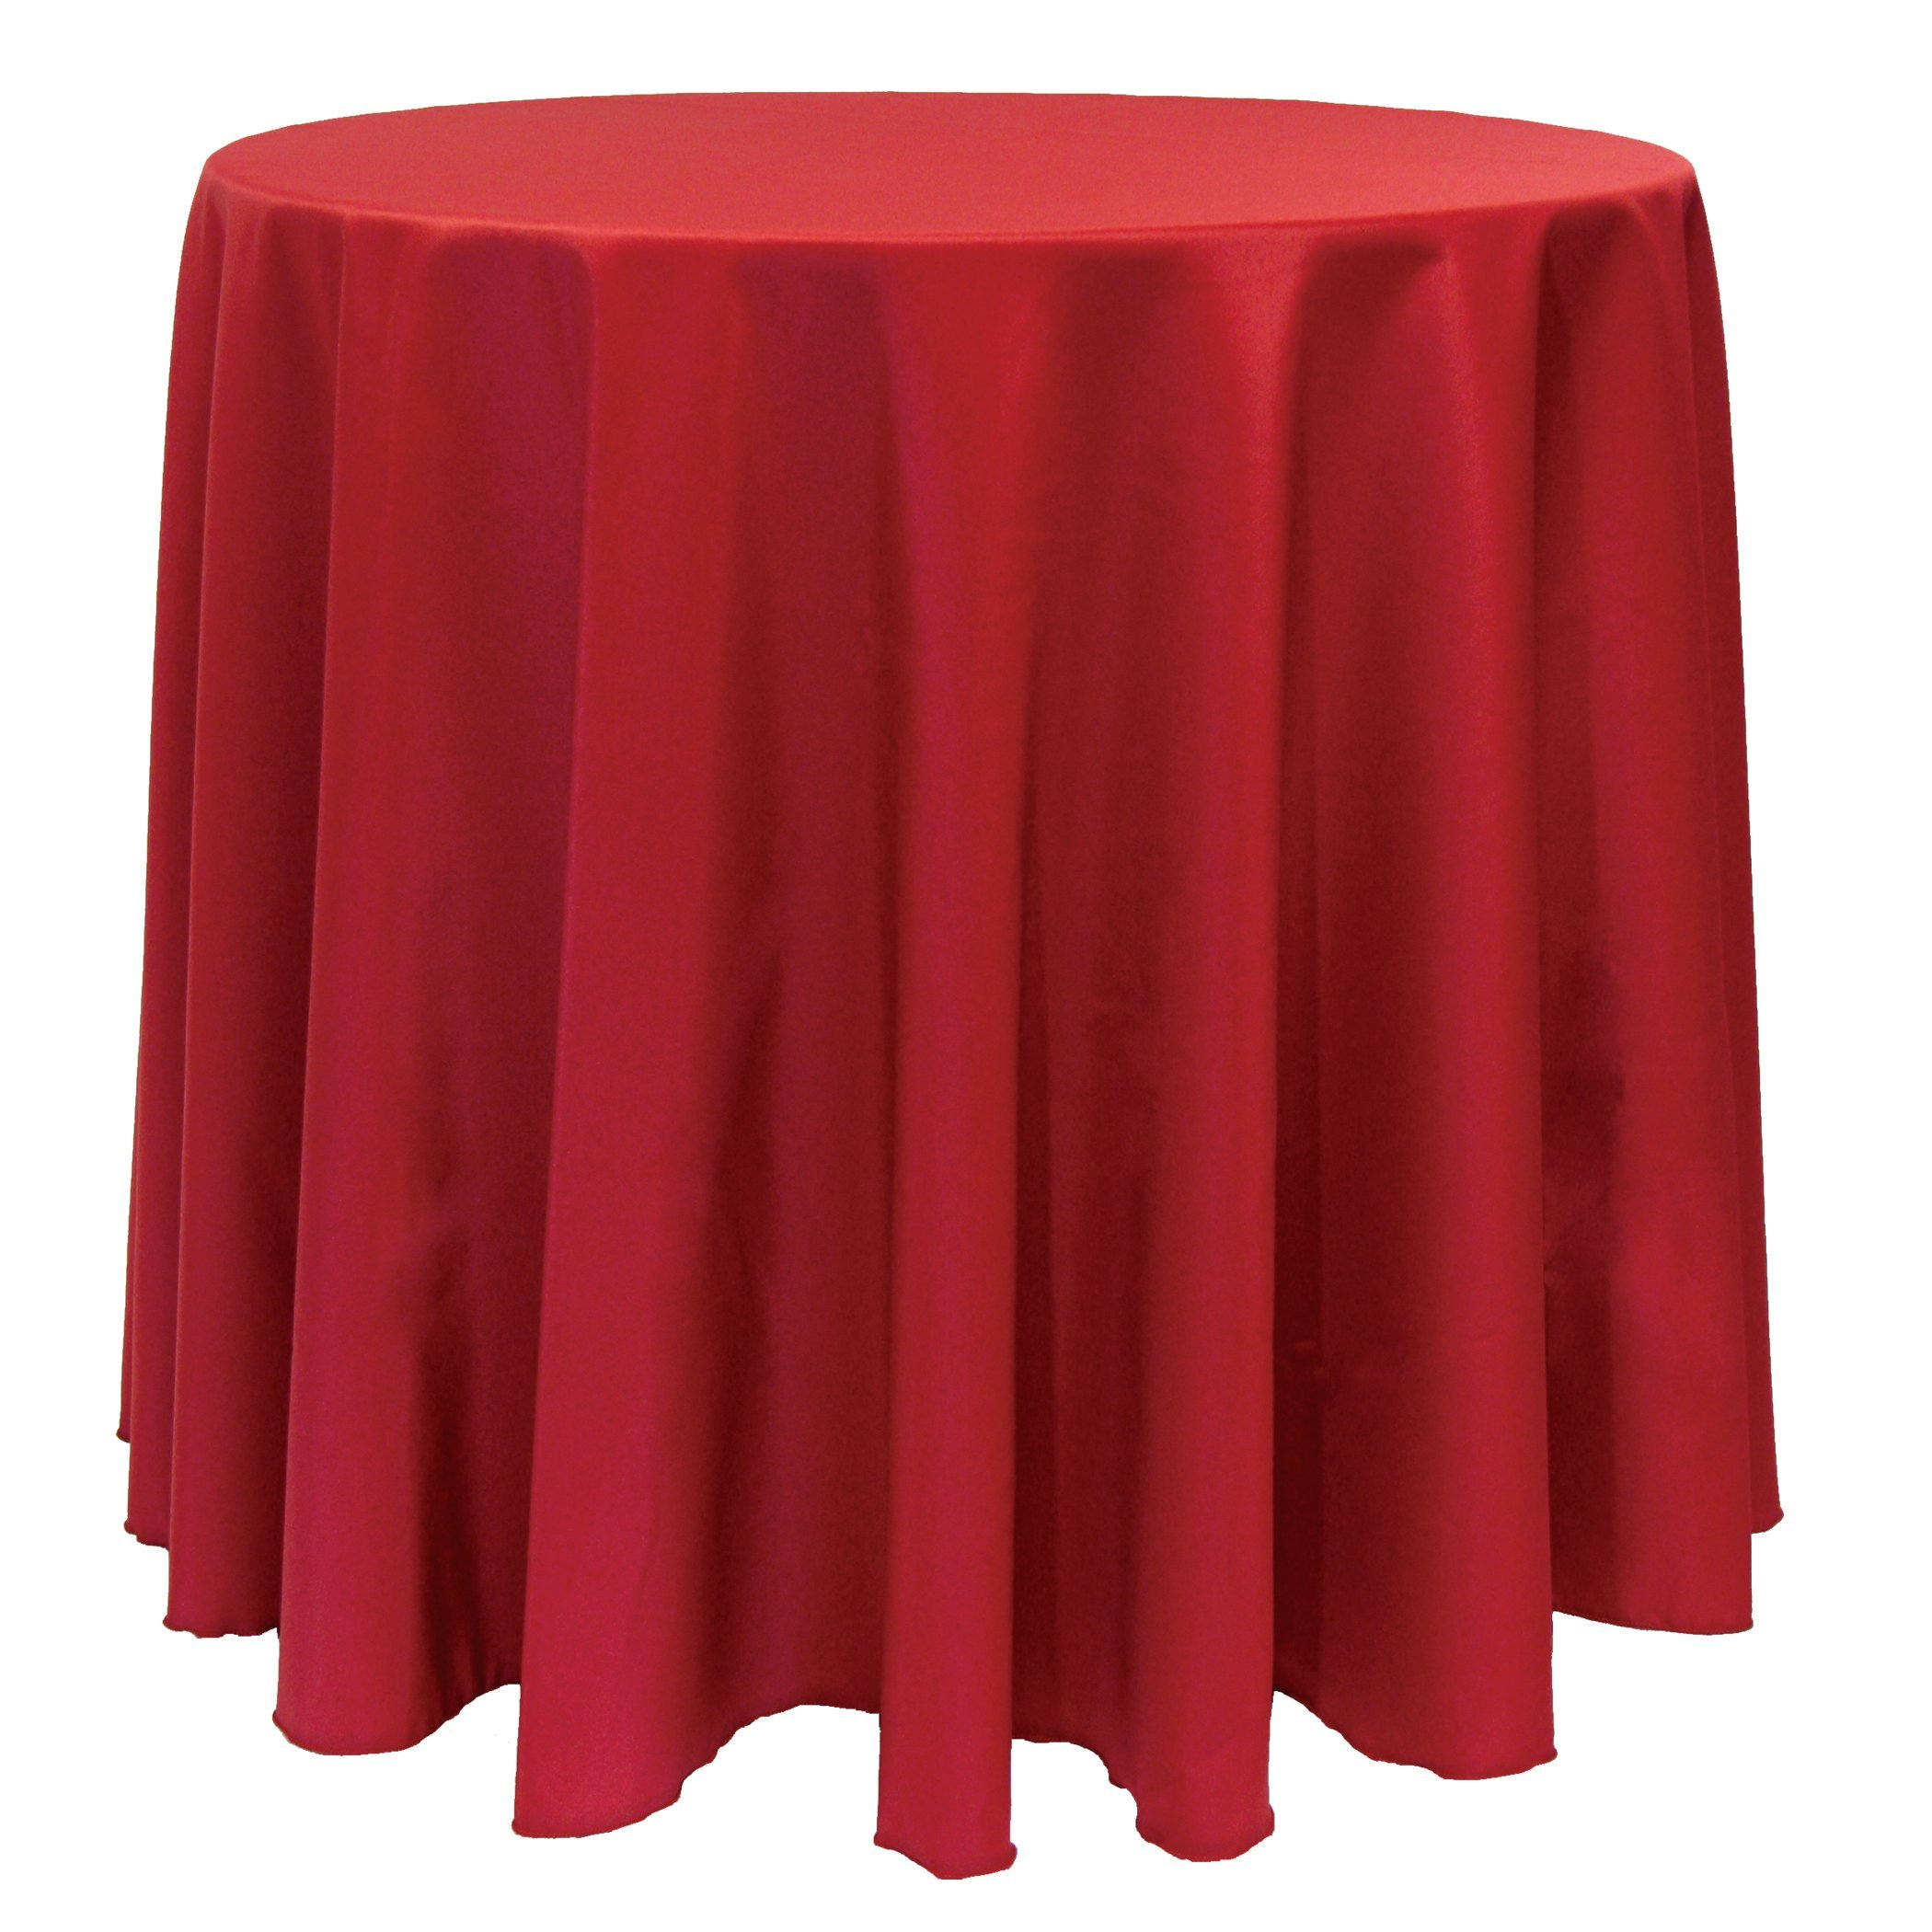 Ultimate Textile (10 Pack) 90-Inch Round Polyester Linen Tablecloth - for Wedding, Restaurant or Banquet use, Holiday Christmas Red by Ultimate Textile